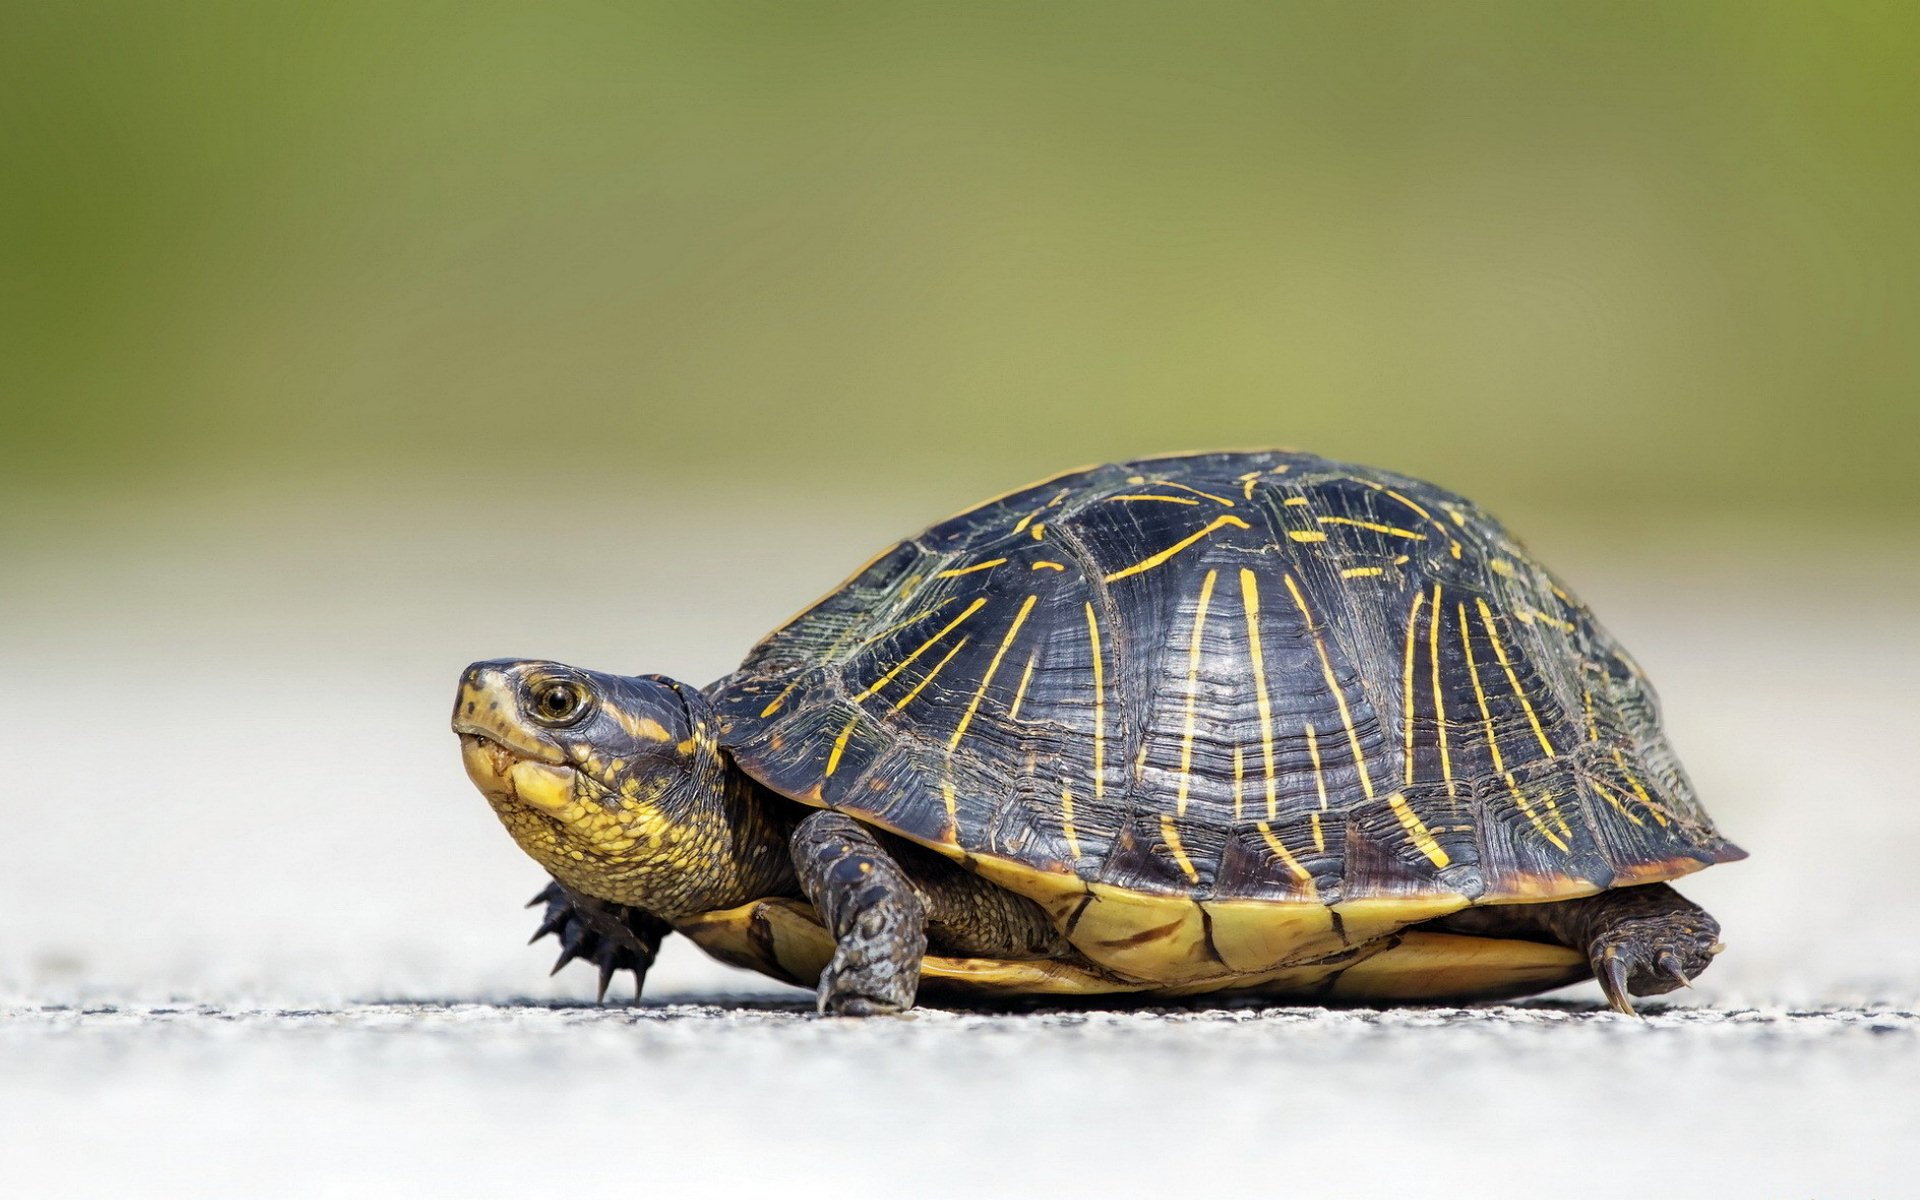 Funny 3d Animal Turtle Wallpapers Hd: Turtle Full HD Wallpaper And Background Image